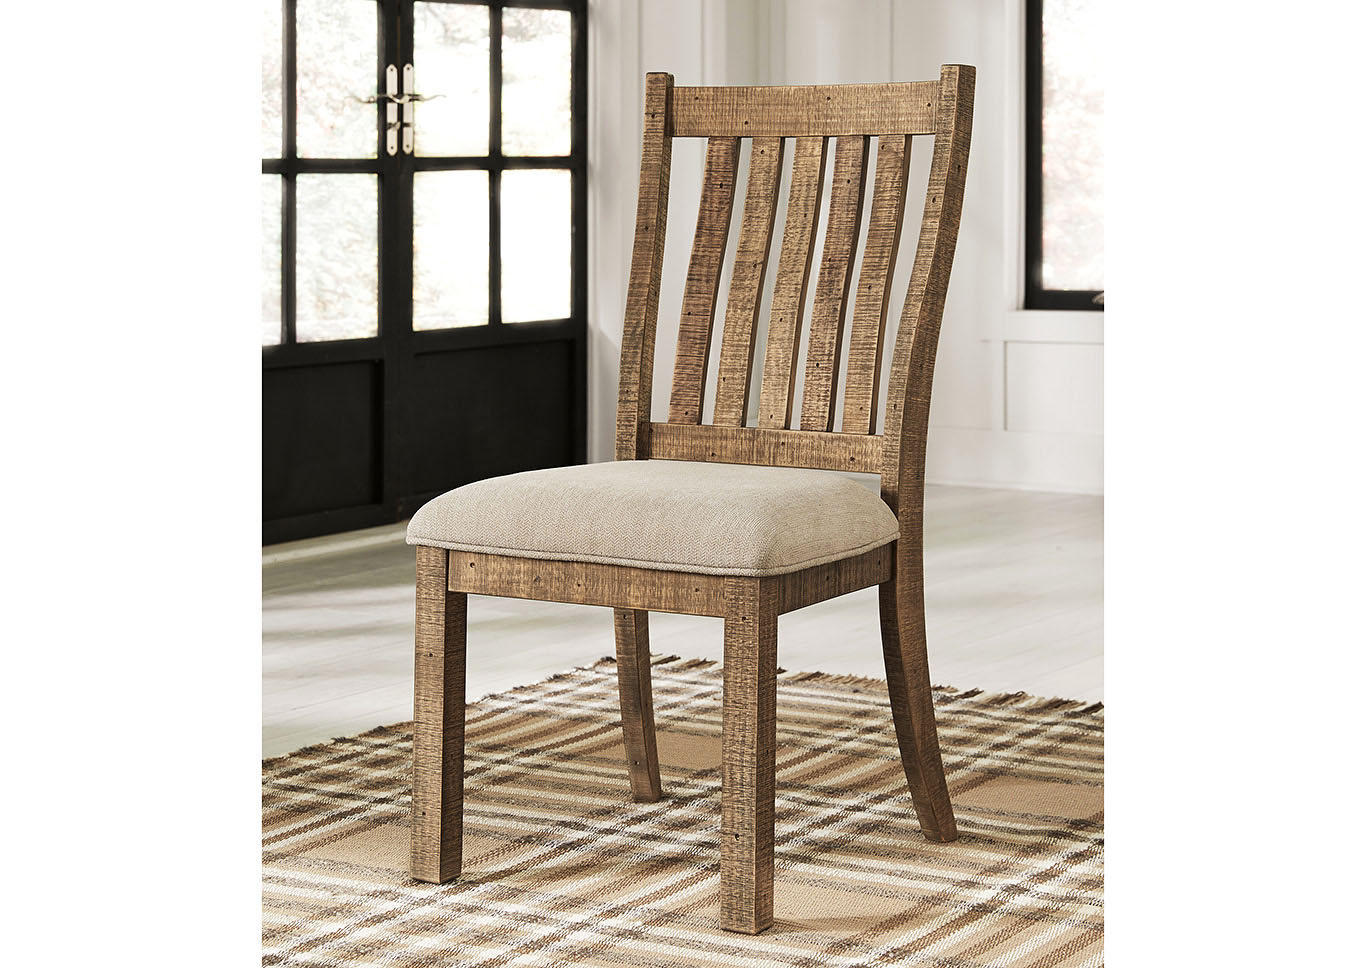 Grindleburg Dining Room Chair (Set of 2),Signature Design By Ashley